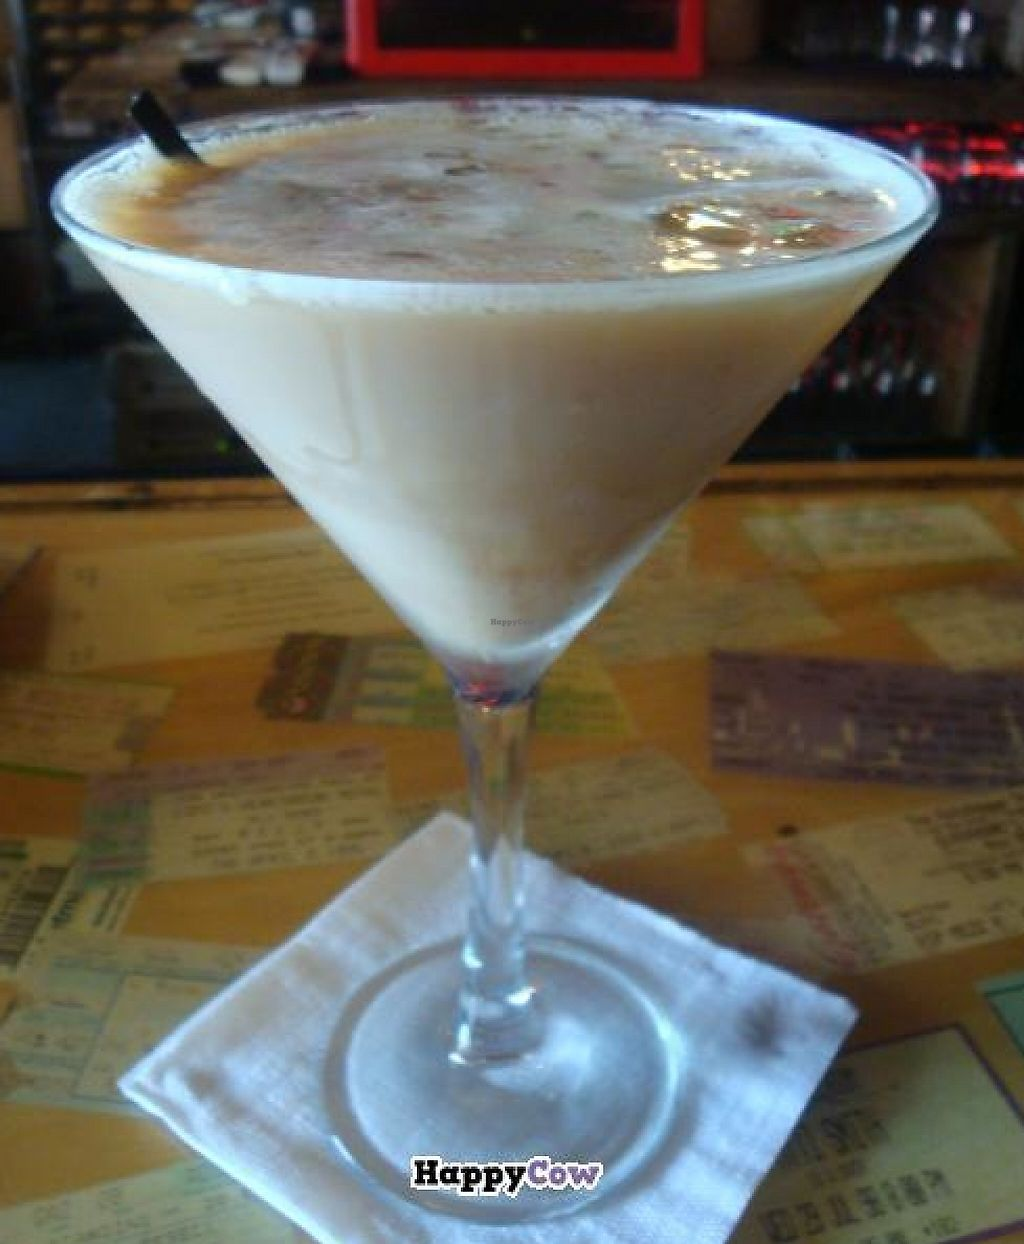 "Photo of Pine Box Rock Shop  by <a href=""/members/profile/Sonja%20and%20Dirk"">Sonja and Dirk</a> <br/>Irish cream martini <br/> July 24, 2013  - <a href='/contact/abuse/image/31650/209651'>Report</a>"